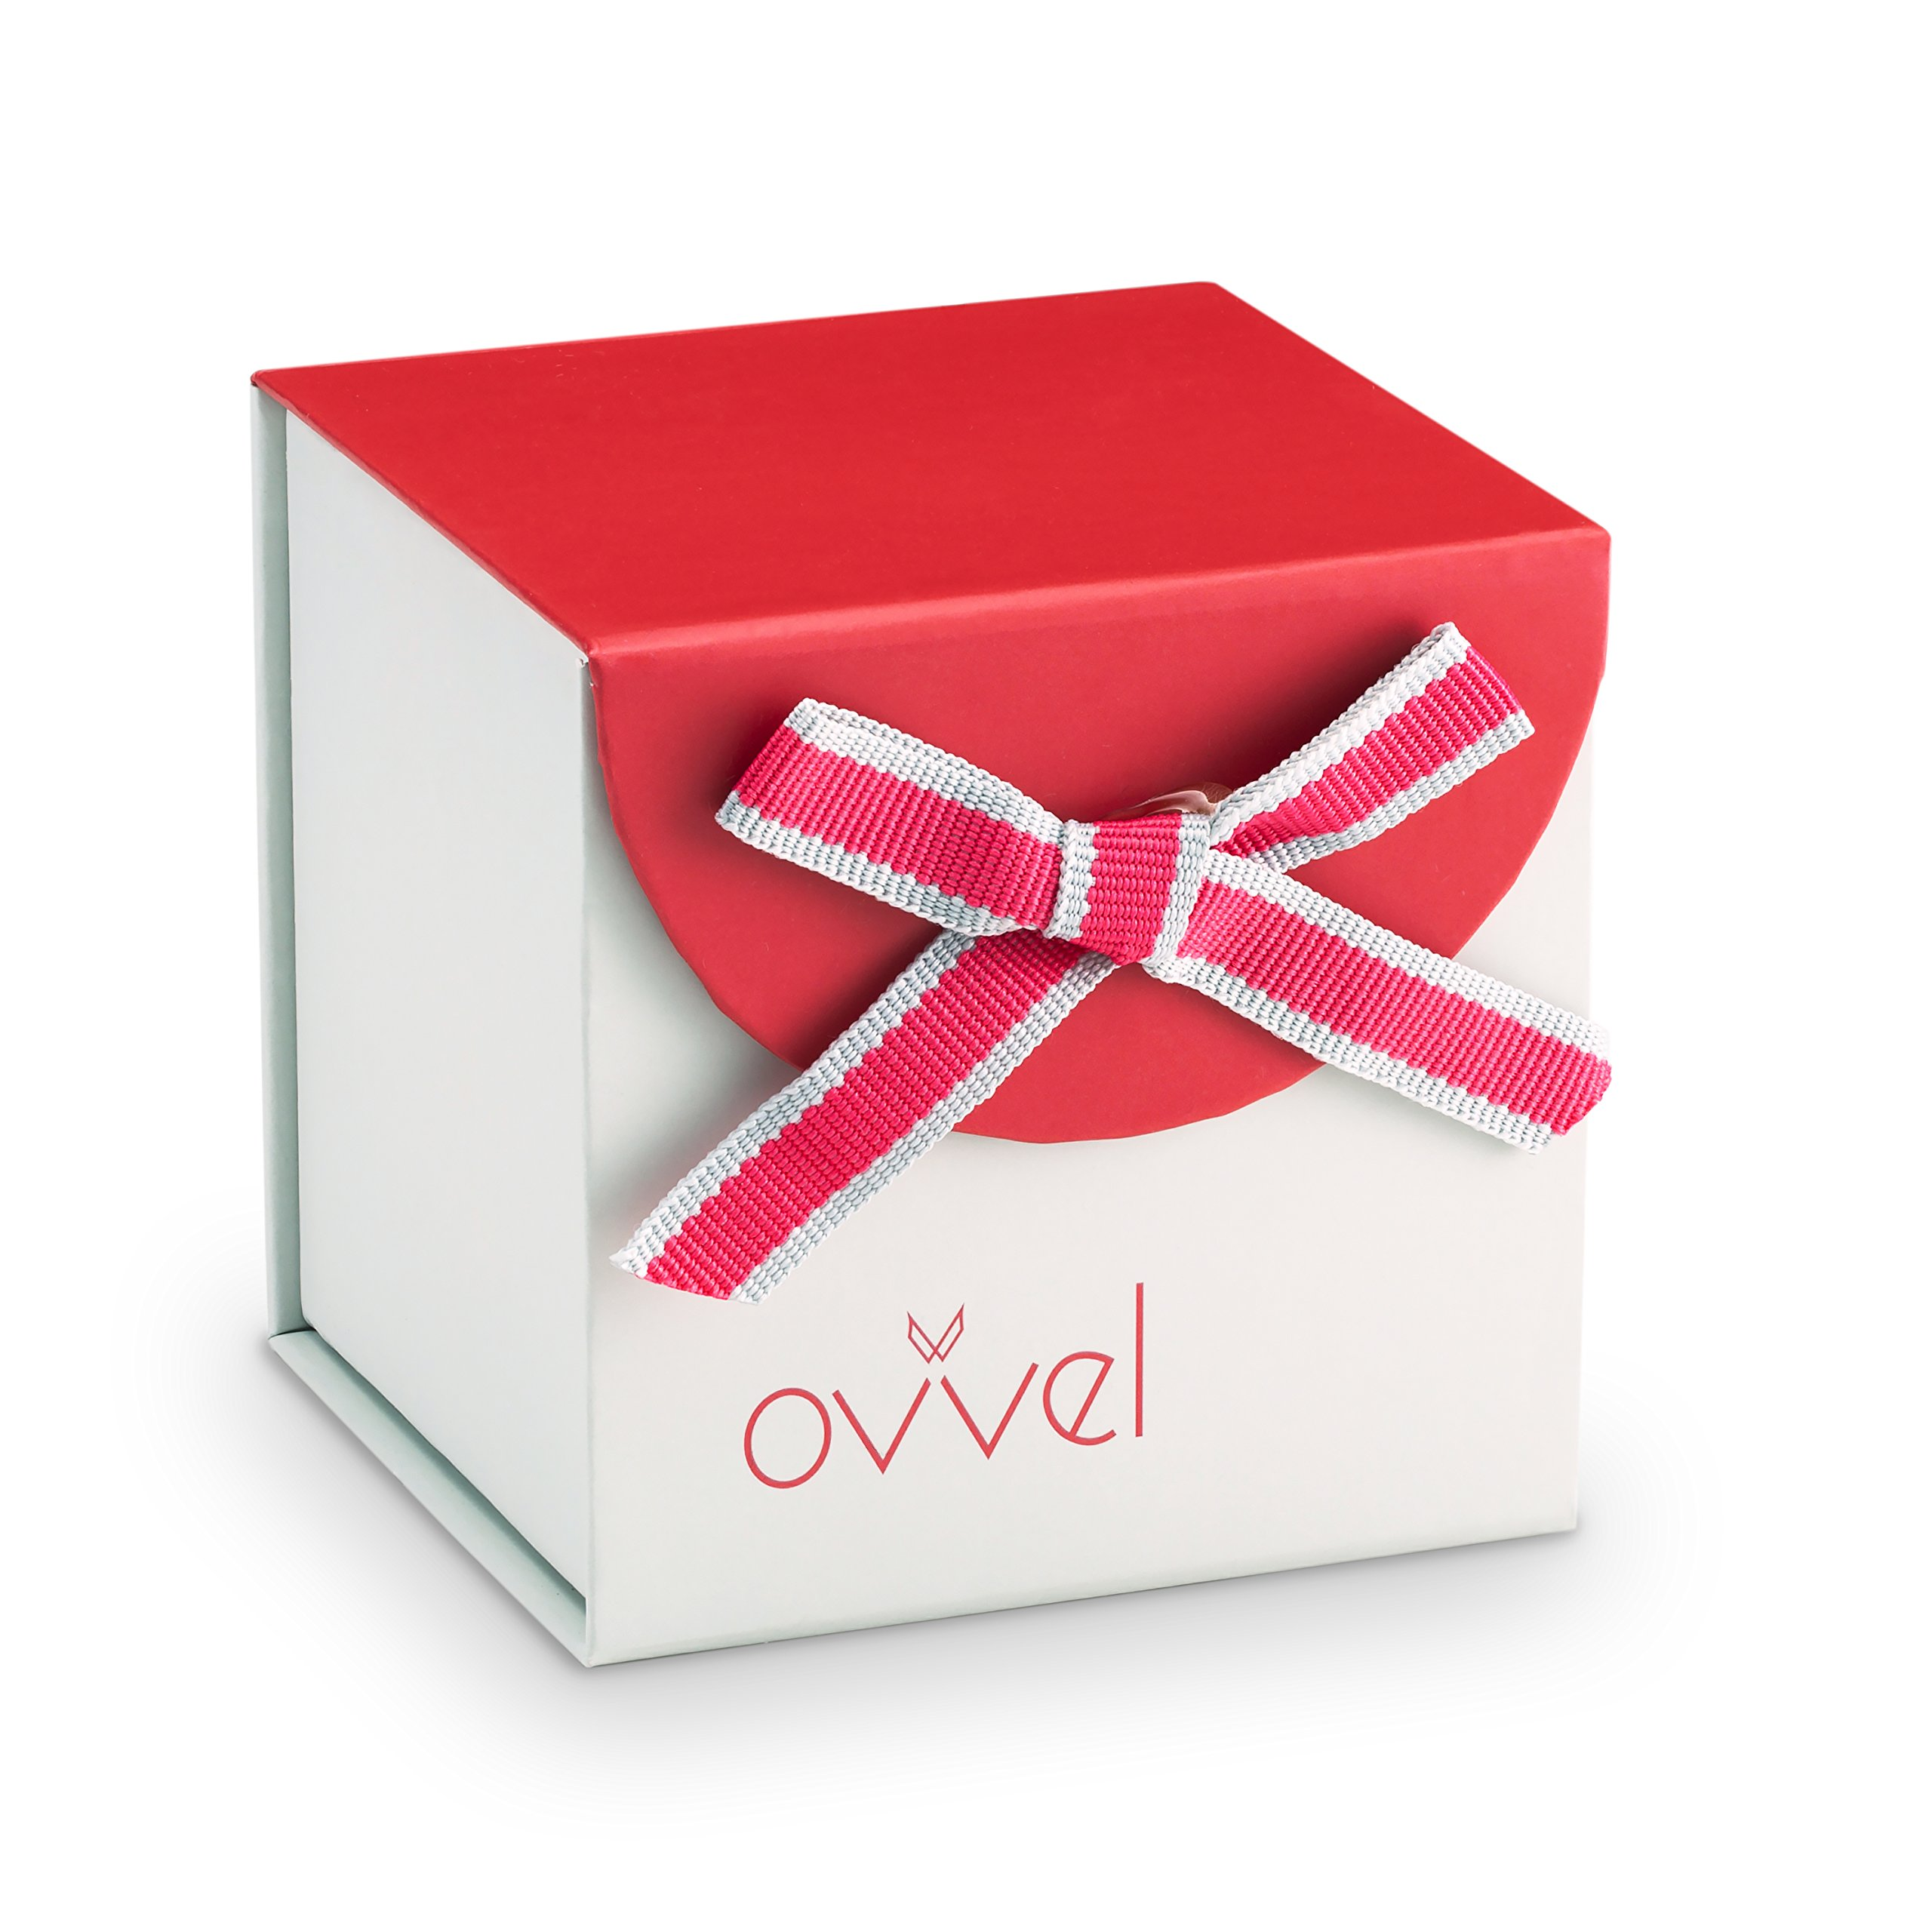 Ovvel Girls Watch - Pretty and Cute Kids Wrist with Teaching Analog Display Time Teacher - Japanese Quartz Movement - Pink Butterfly Design by Ovvel (Image #5)